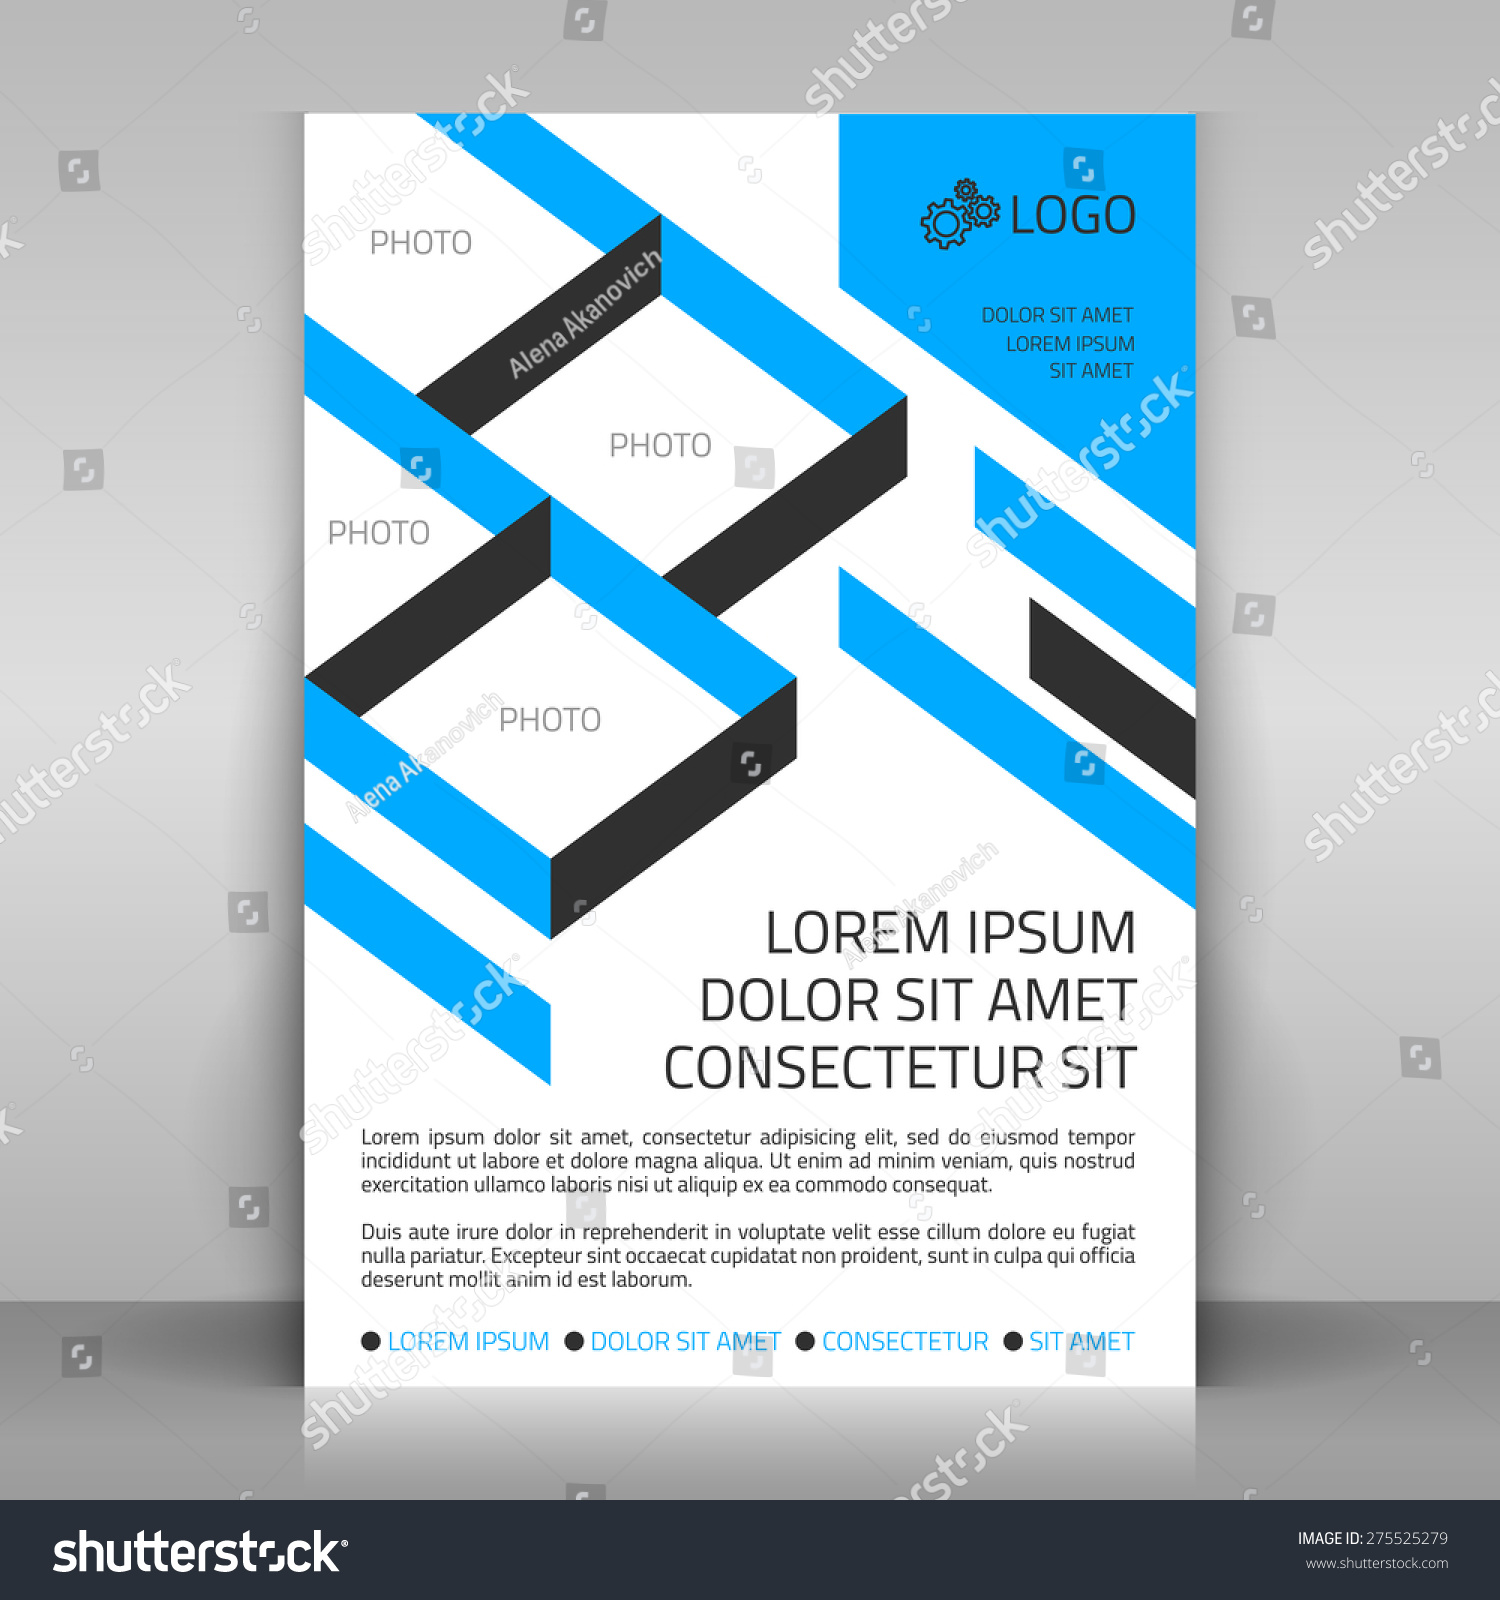 Doc600842 Advertising Poster Templates 69 Poster Templates – Advertising Poster Templates